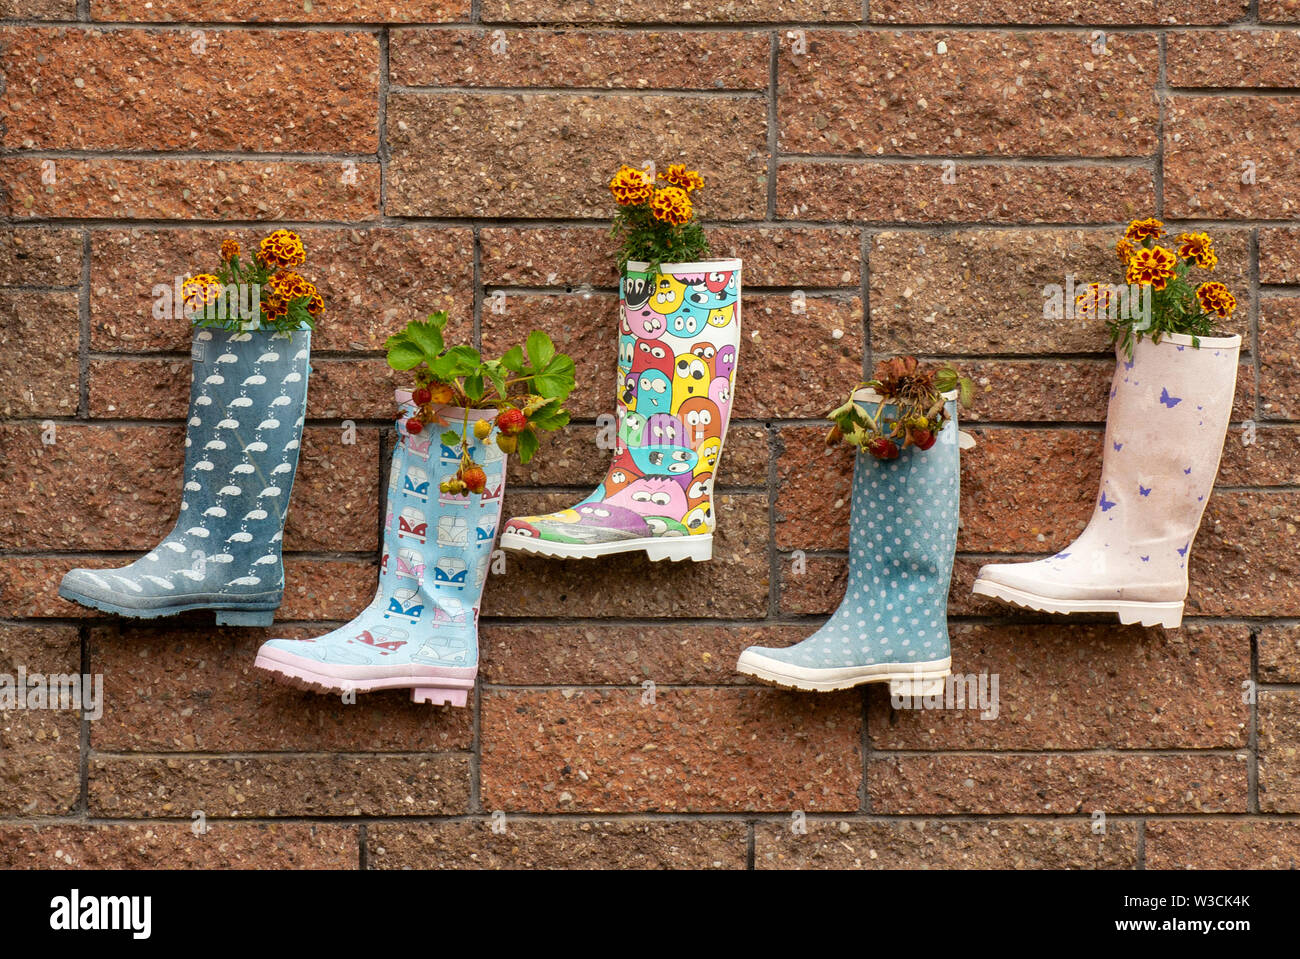 Funny children's kid's Wellington welly boots plant pots with planted strawberries and flowers hanging on brick wall in Irish kindergarten. Stock Photo